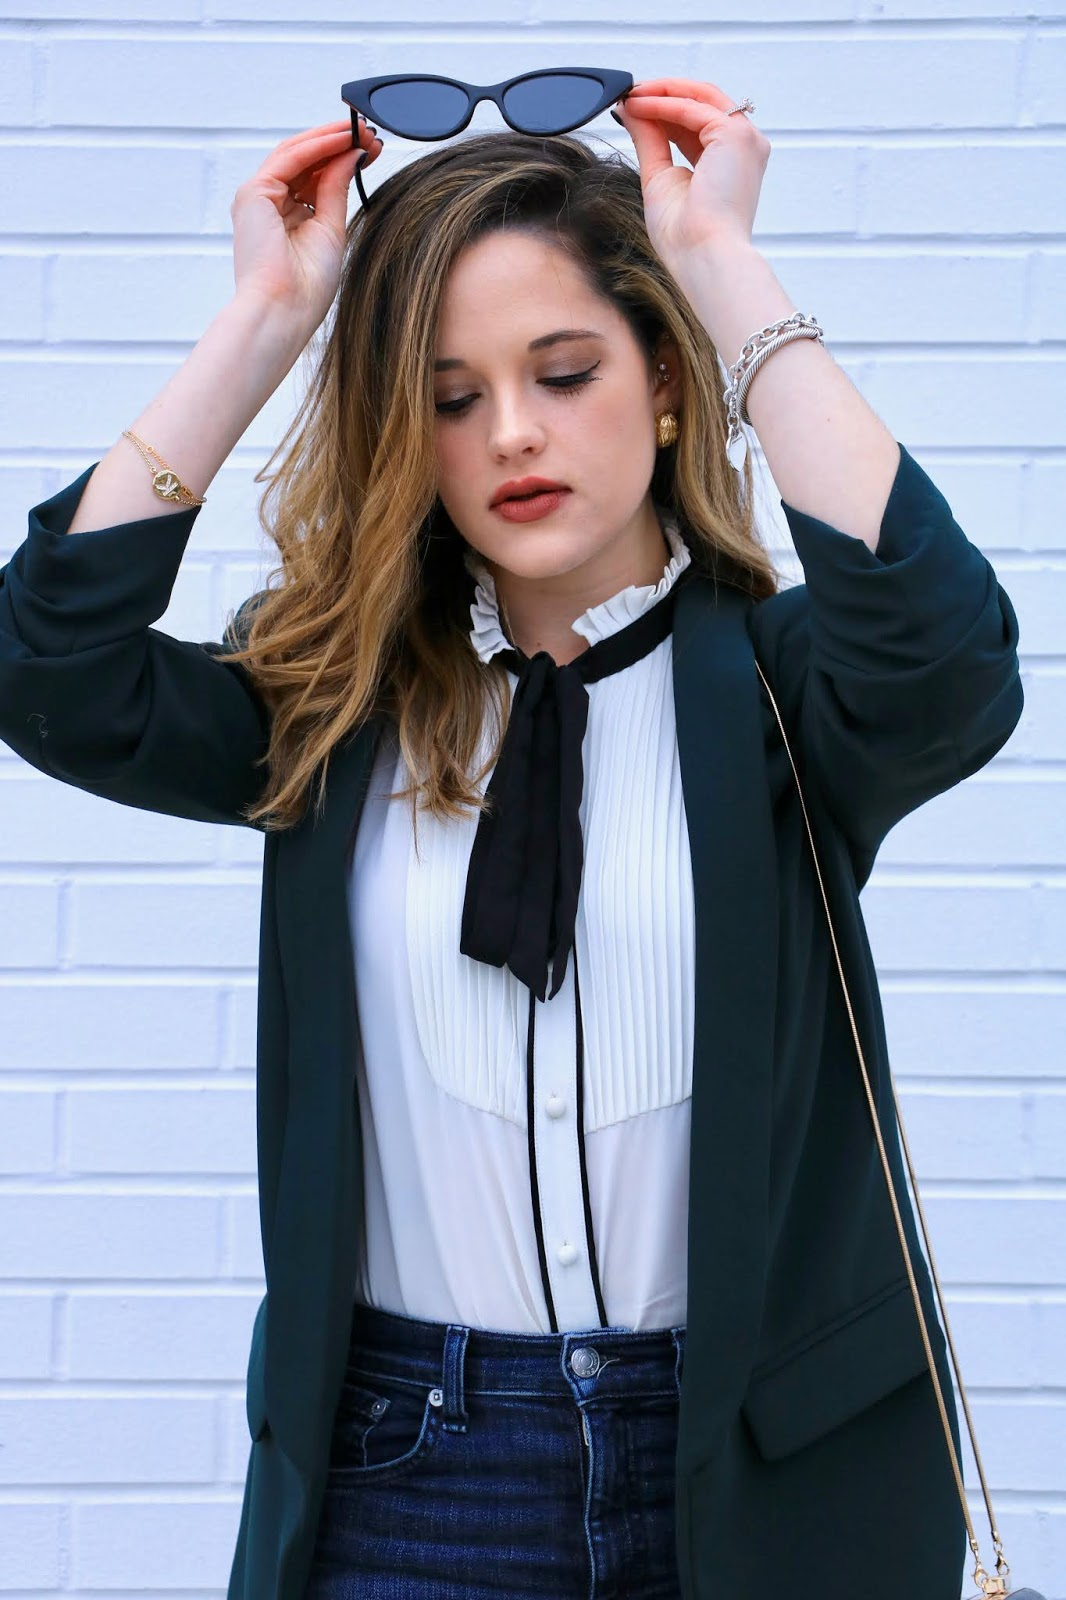 Nyc fashion blogger Kathleen Harper wearing the Victorian blouse trend.